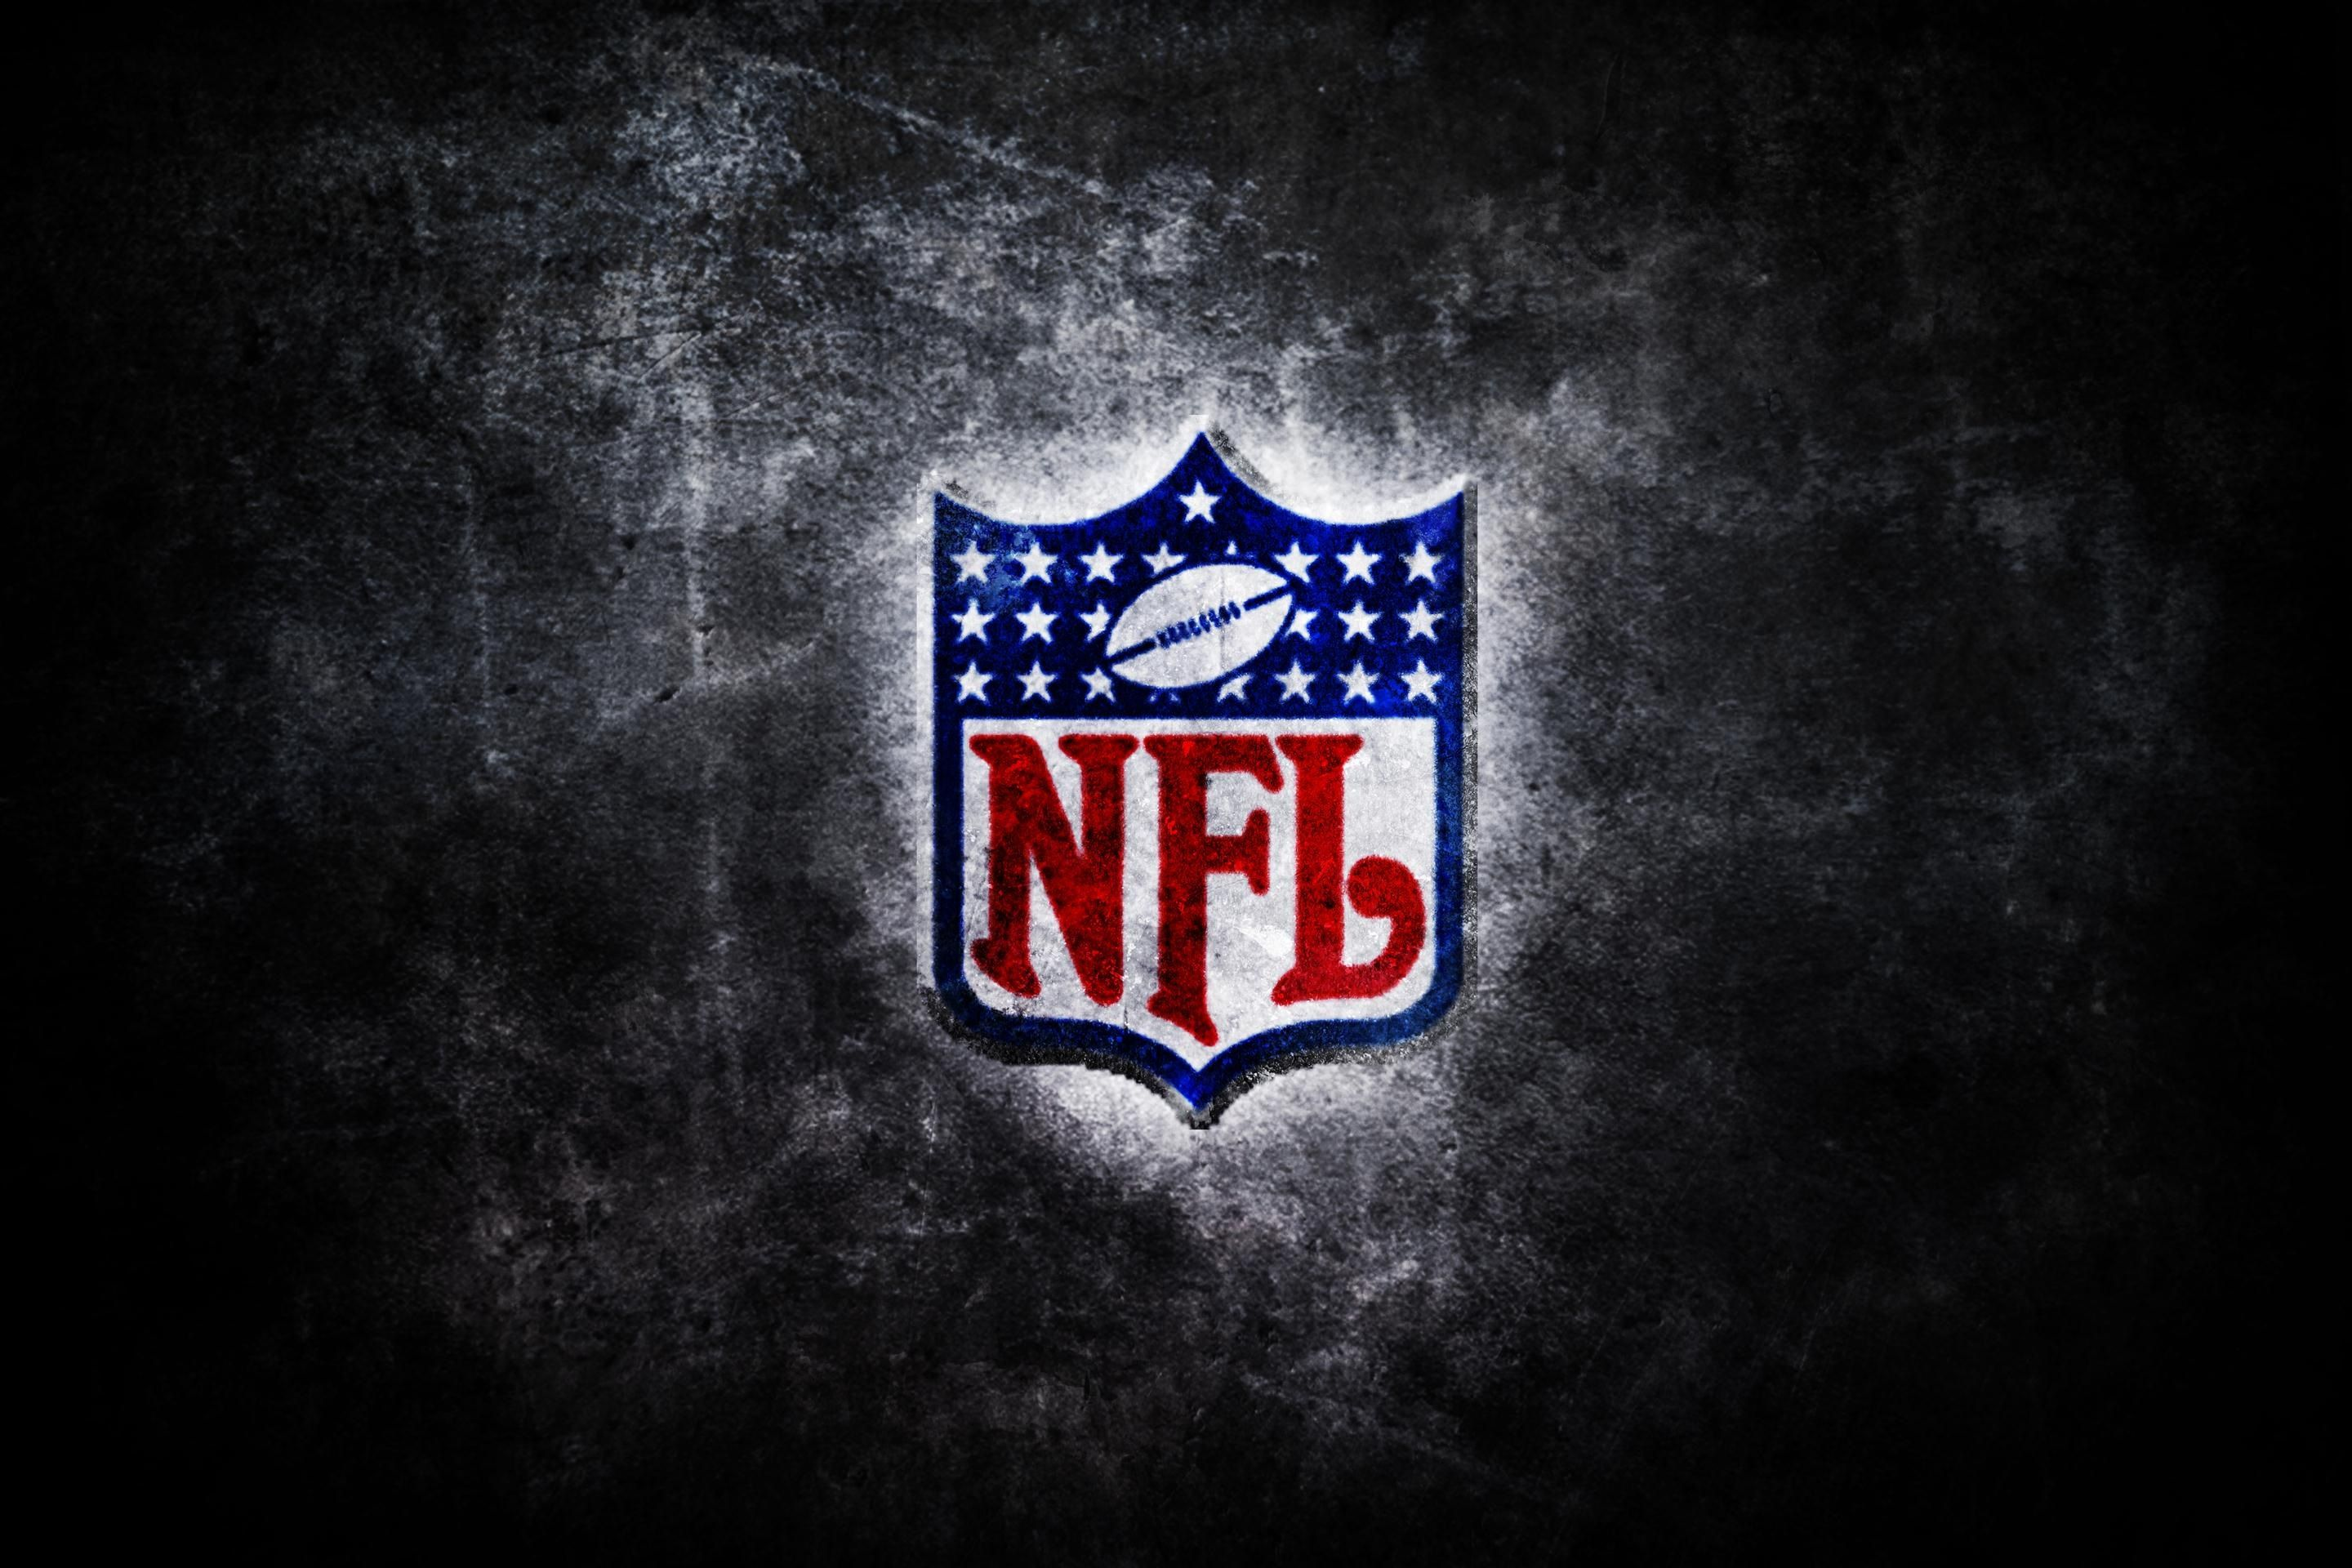 Nfl Hq Logos And Wallpapers 872232 Hd Wallpaper Backgrounds